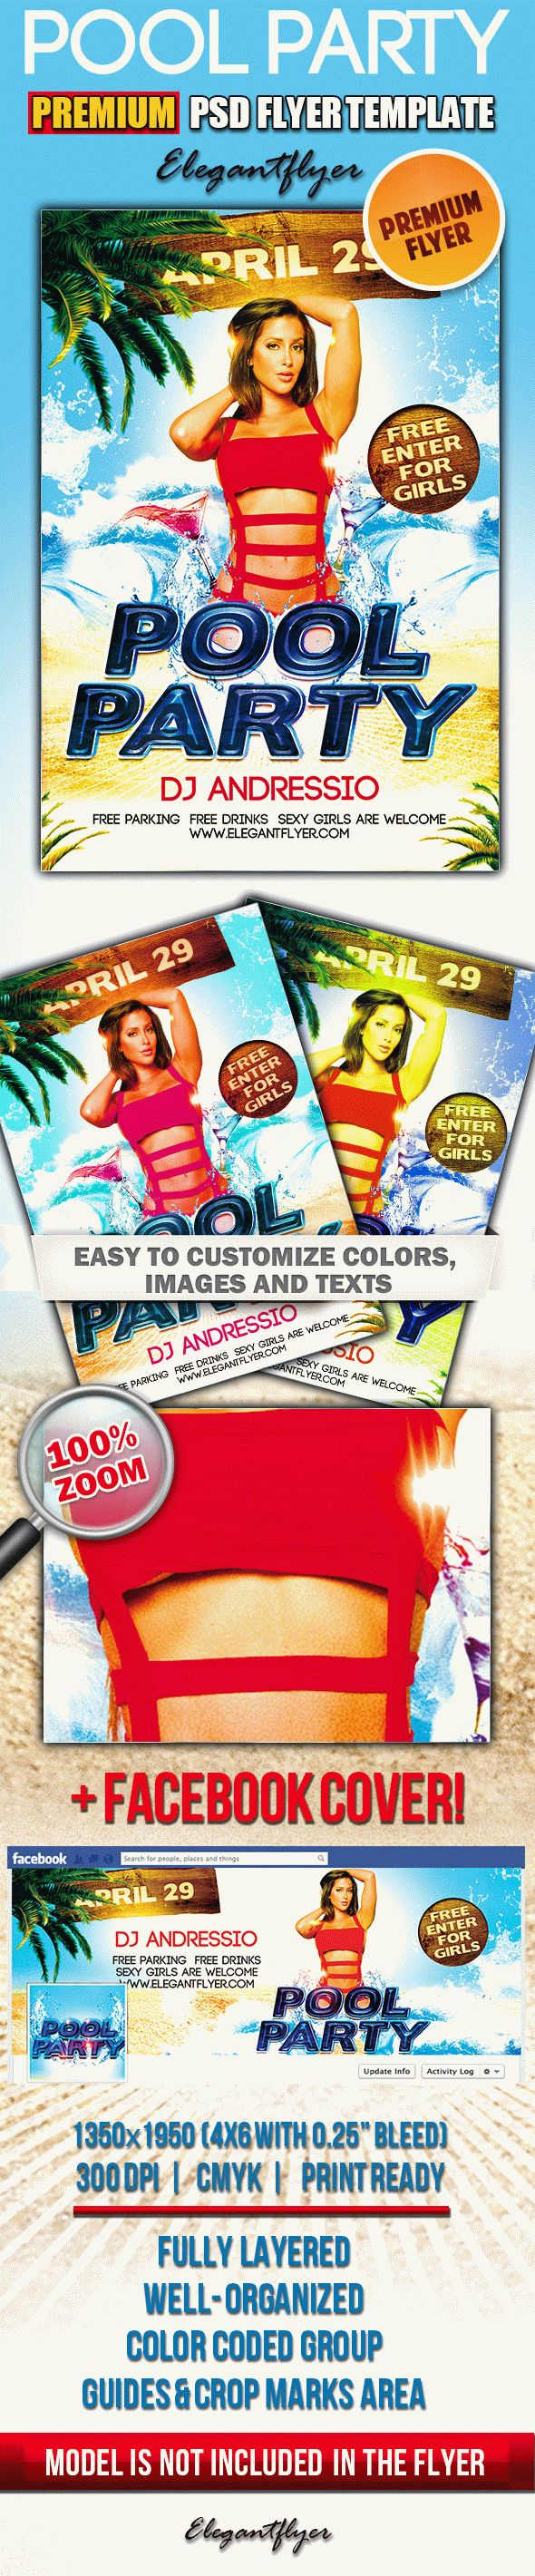 Pool Party U2013 PSD Flyer Templates + Facebook Cover